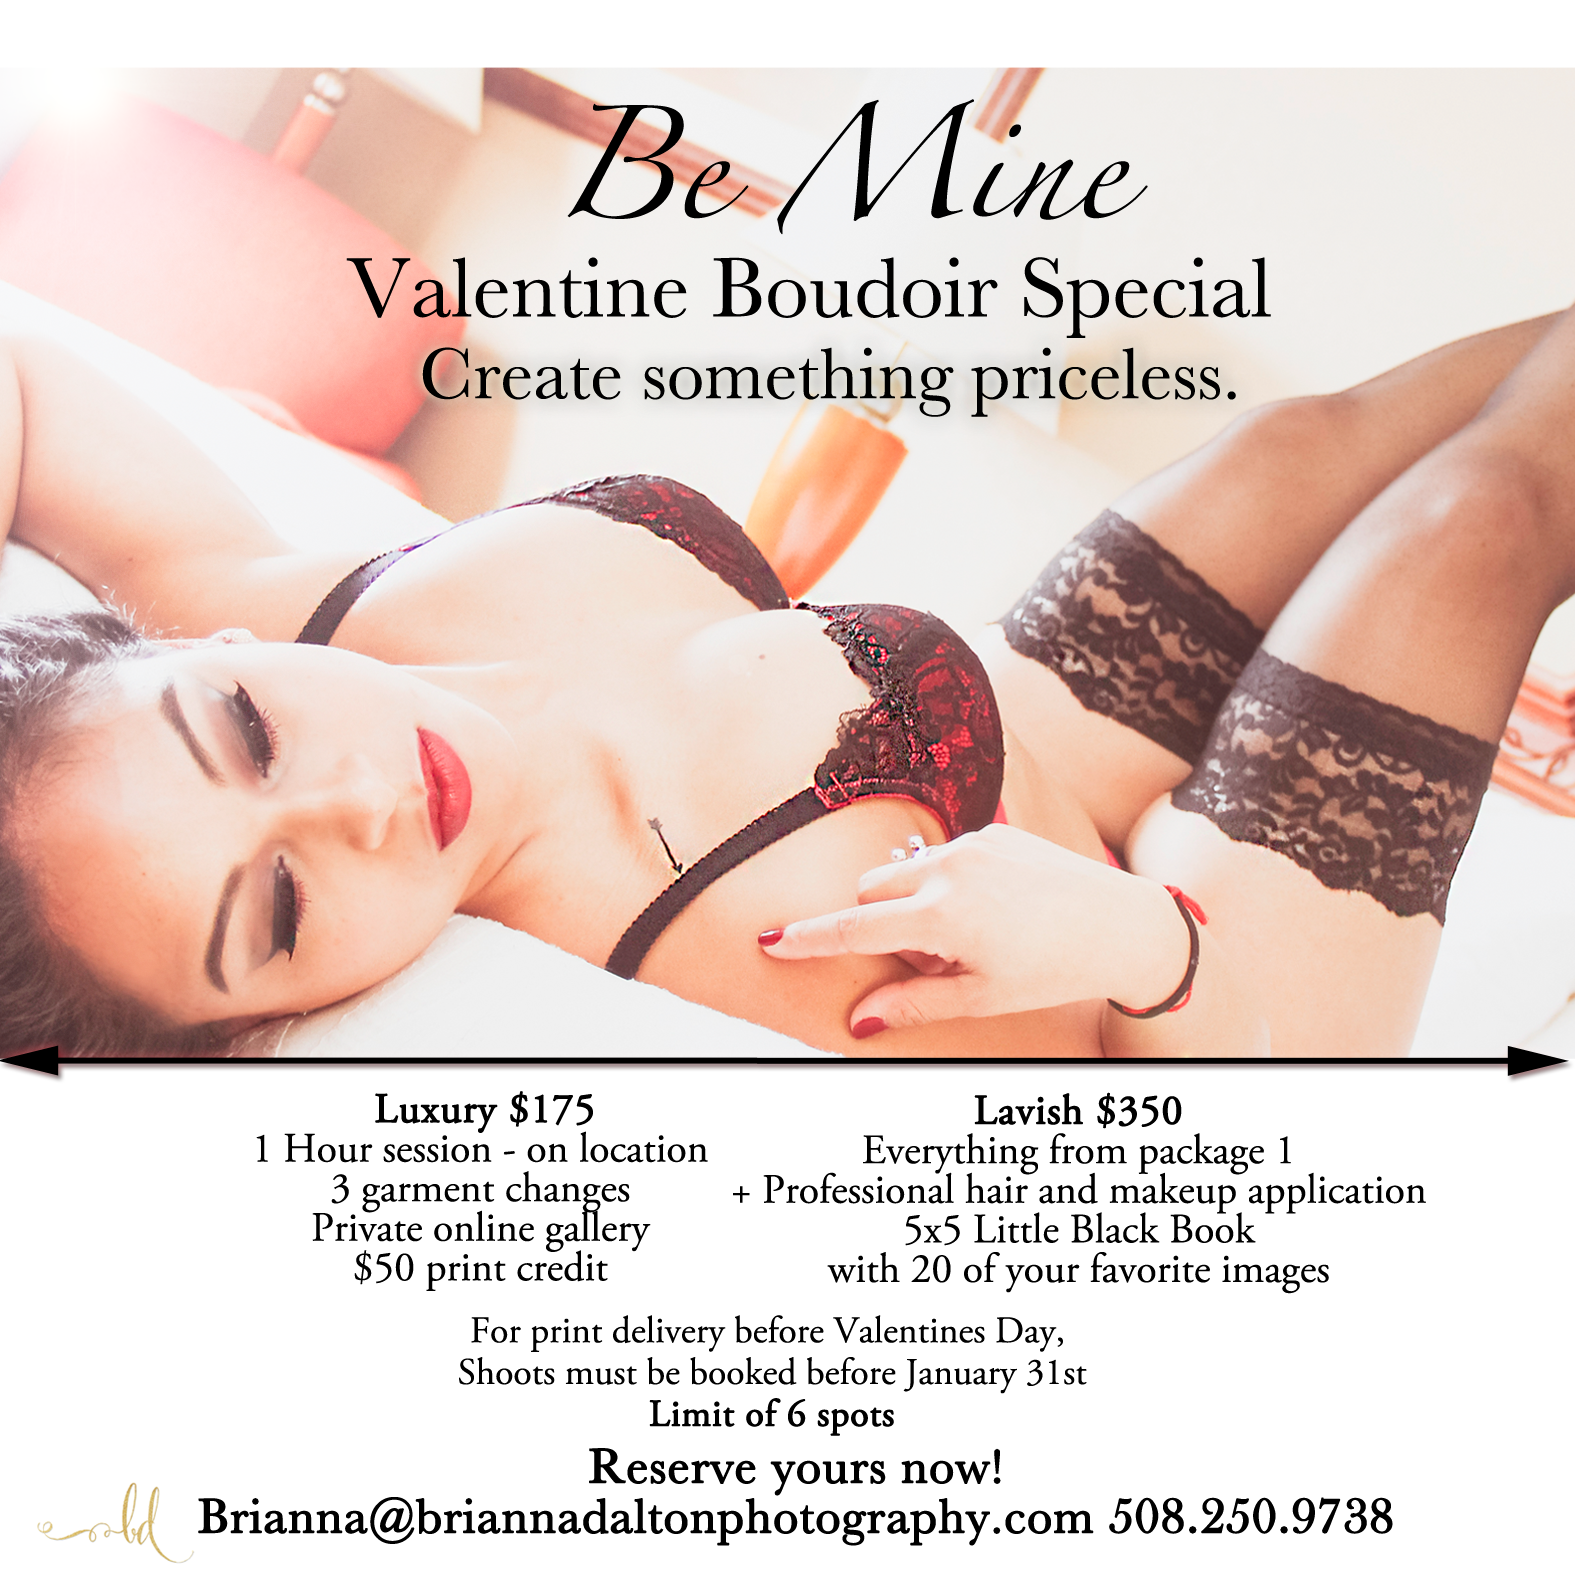 Boudoir Special - Expires February28th  For Valentines Day Delivery, must be booked prior to January 31st 2015